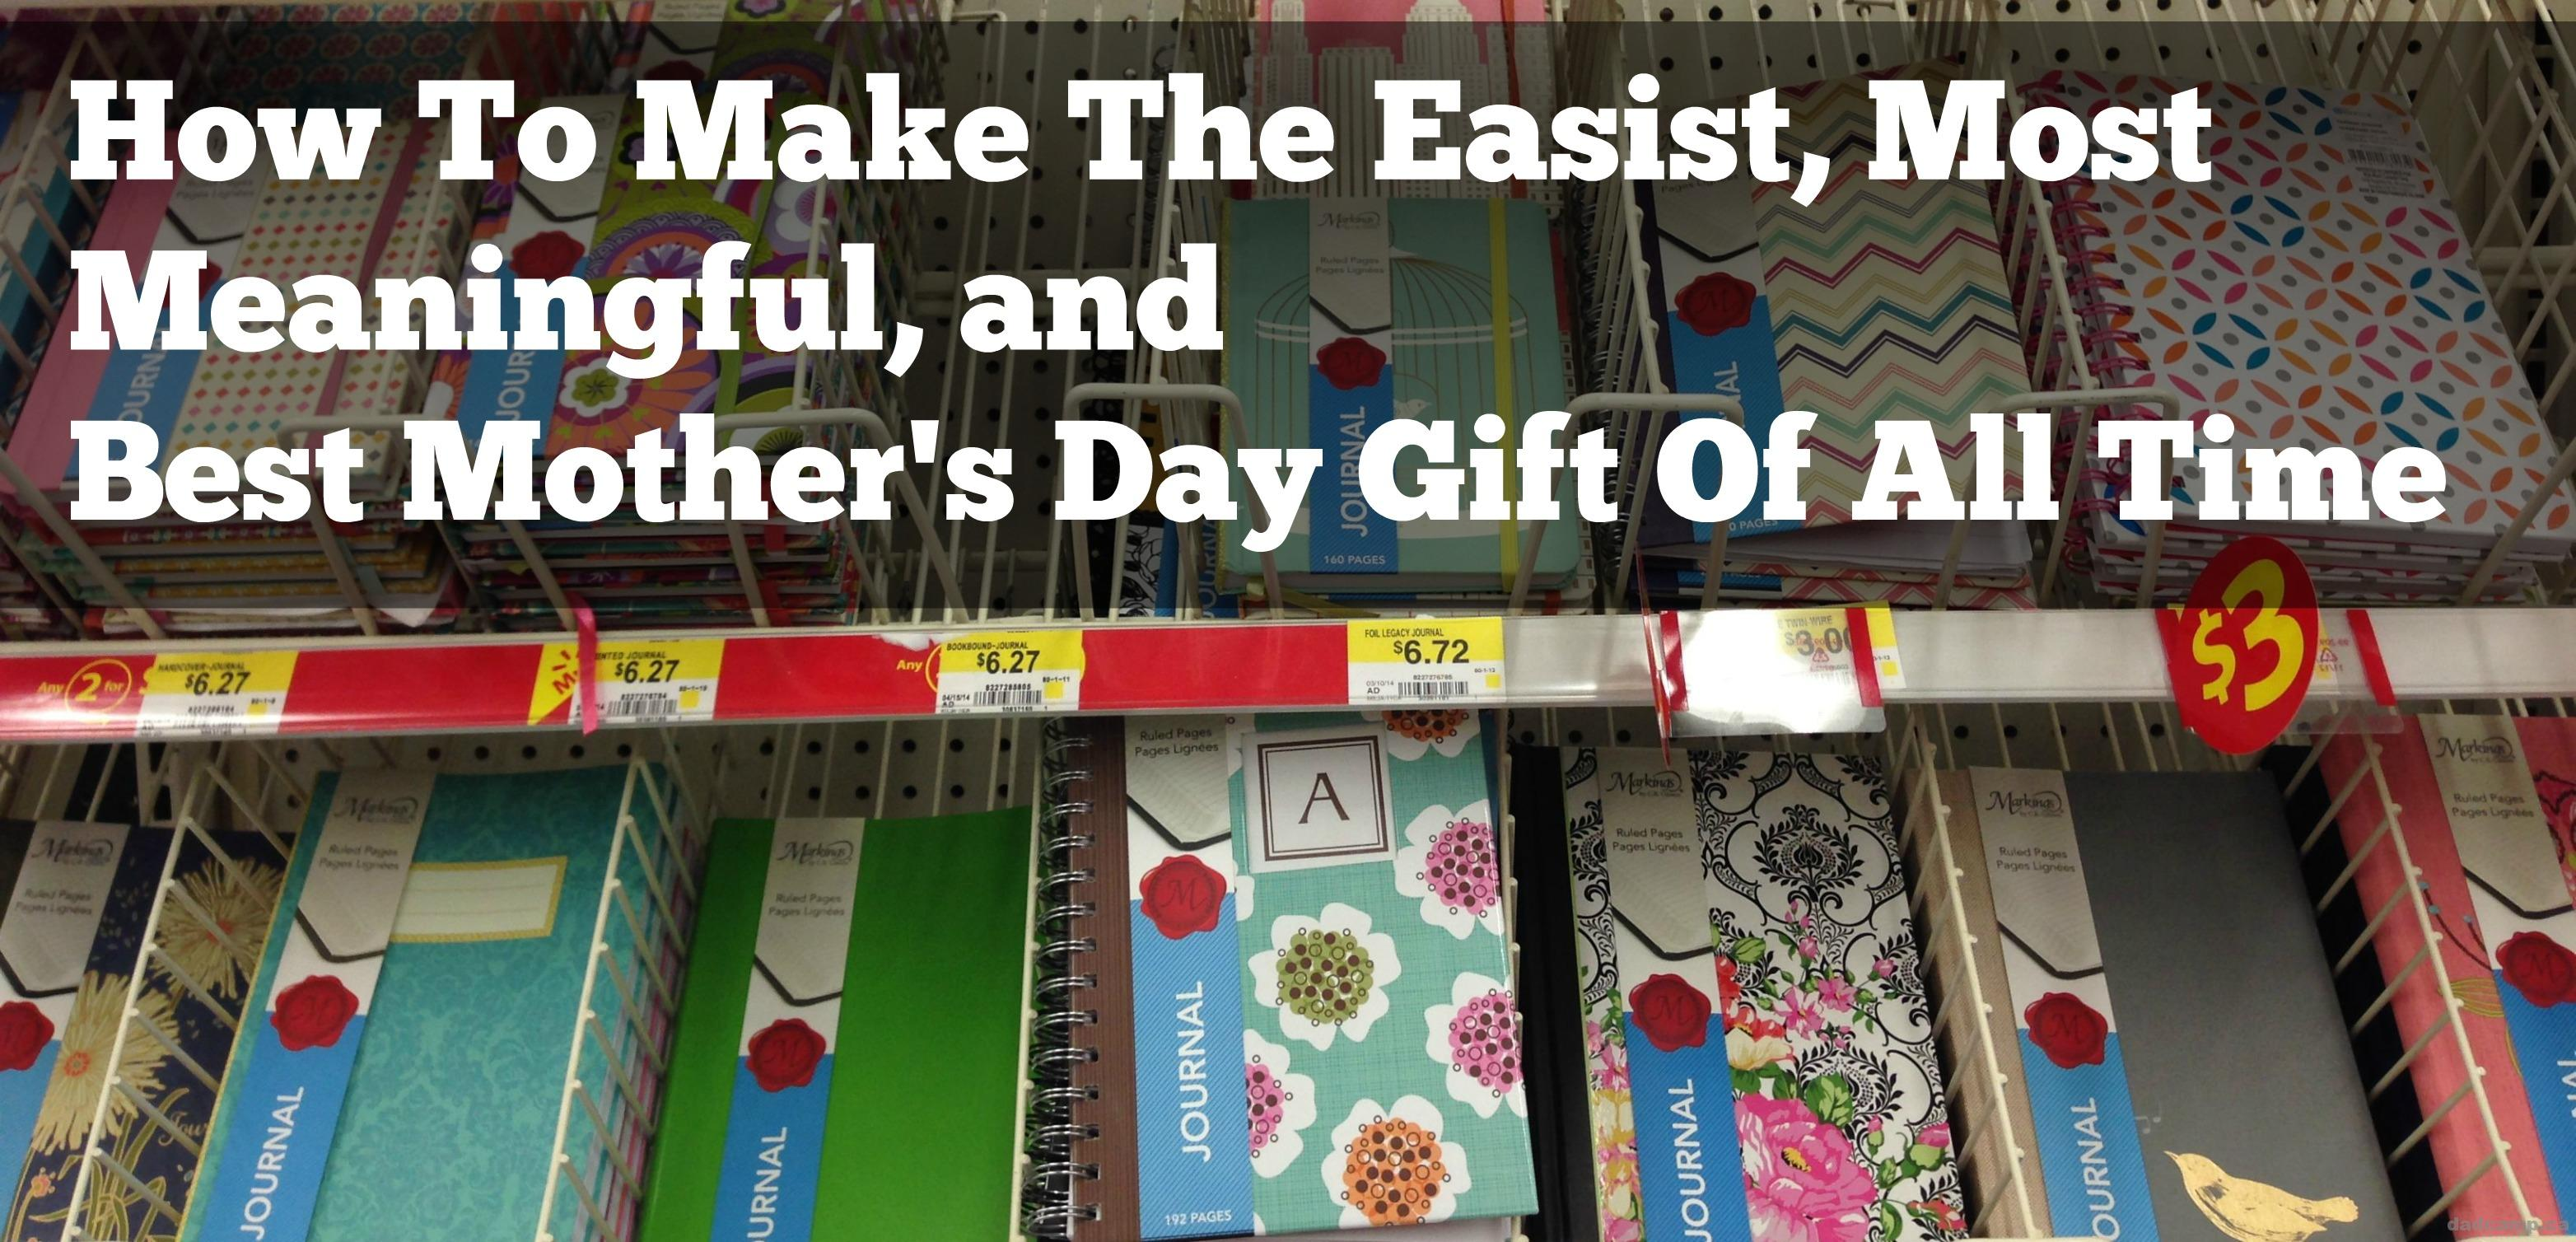 The Mother's Day Journal Is Best Mother's Day Gift Of All Time